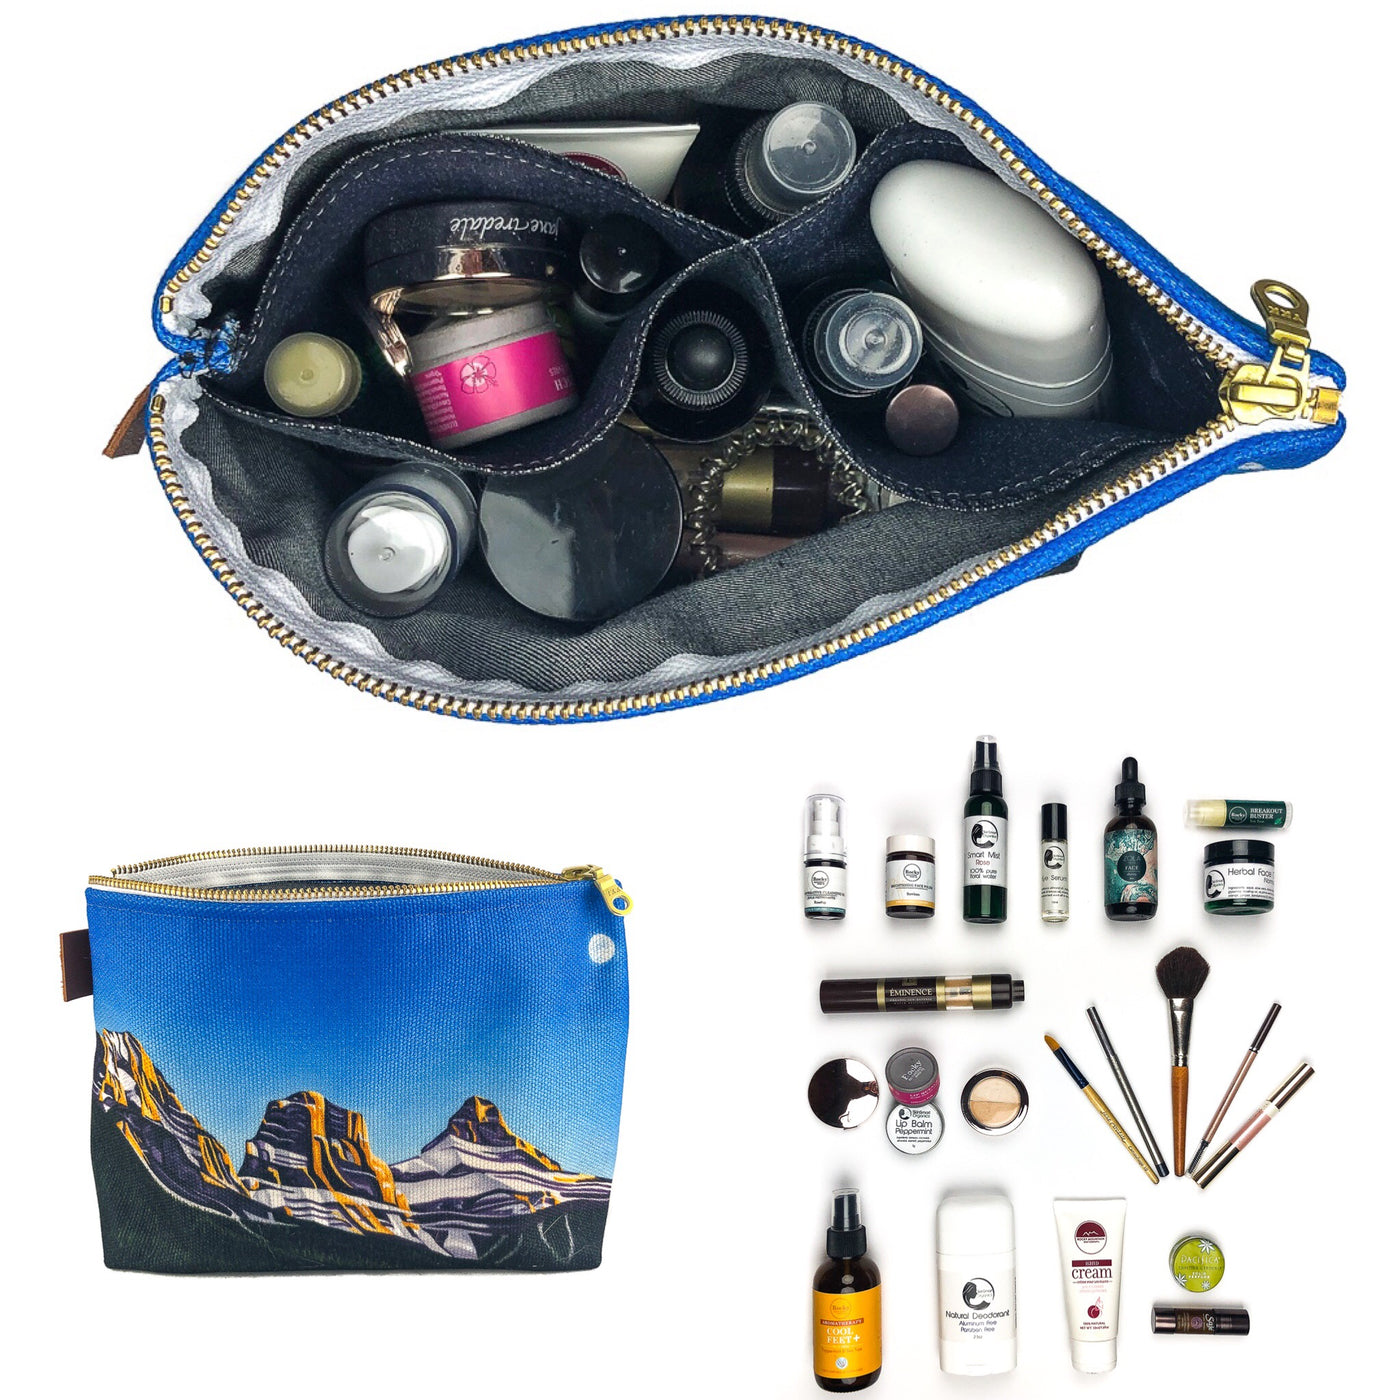 Wonder just how much you can fit in the new makeup bags?